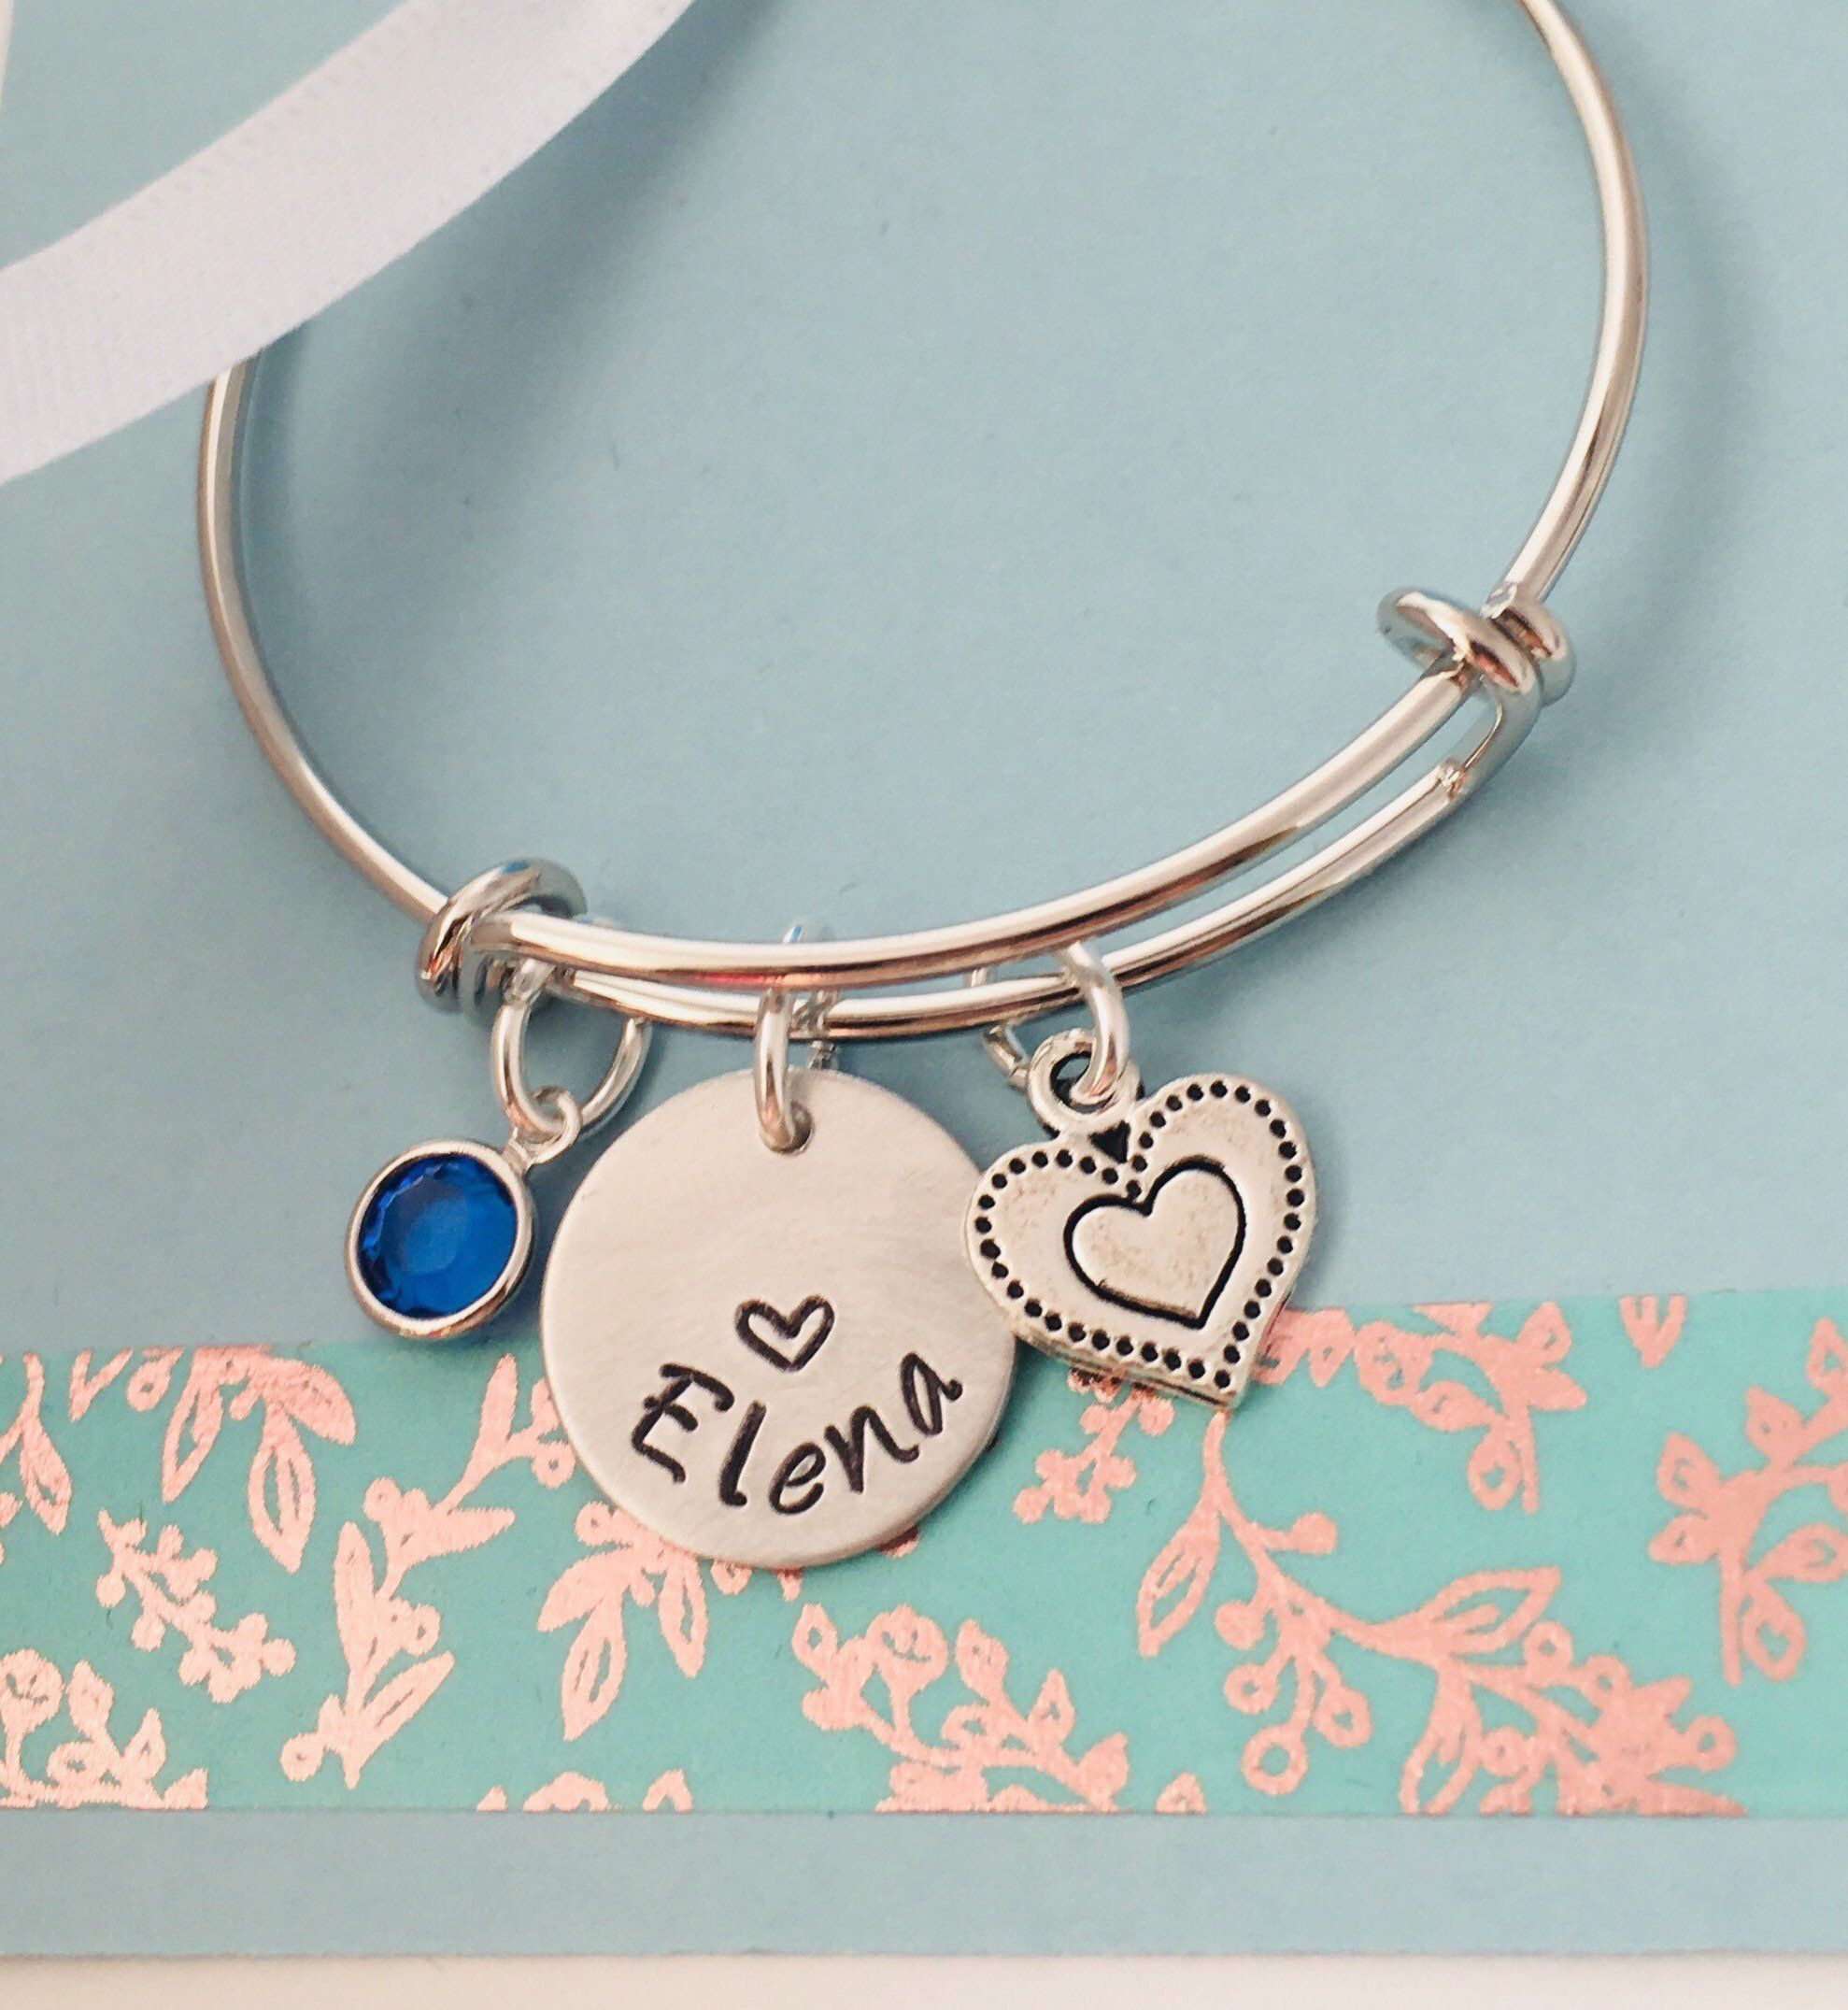 Personalized name bangle bracelet name bracelet silver